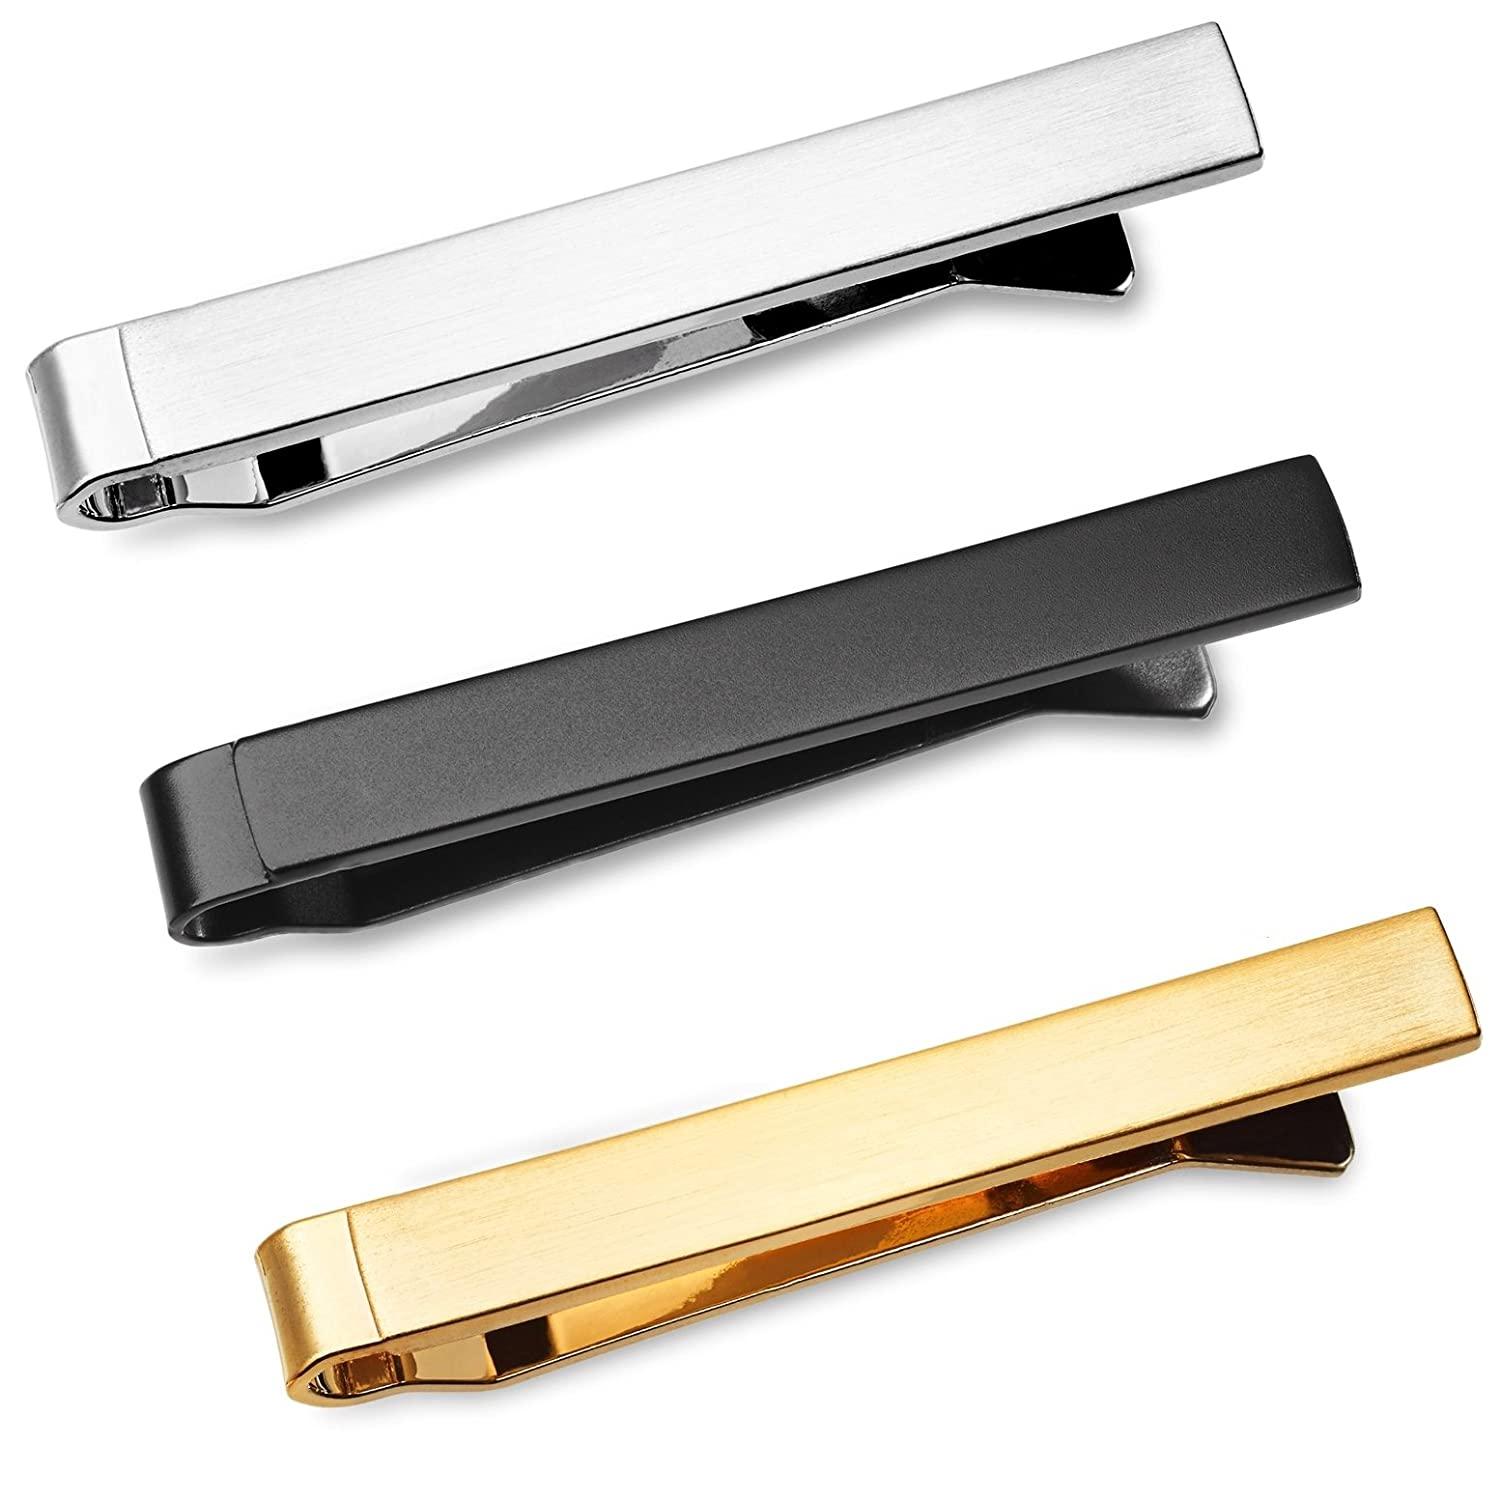 Puentes Denver 3 Pc Mens Tie Bar Slide Clip Set Skinny Ties 1.5 Inch, Brushed Silver, Black, Gold in Gift Box PC-TC-SET-12-C